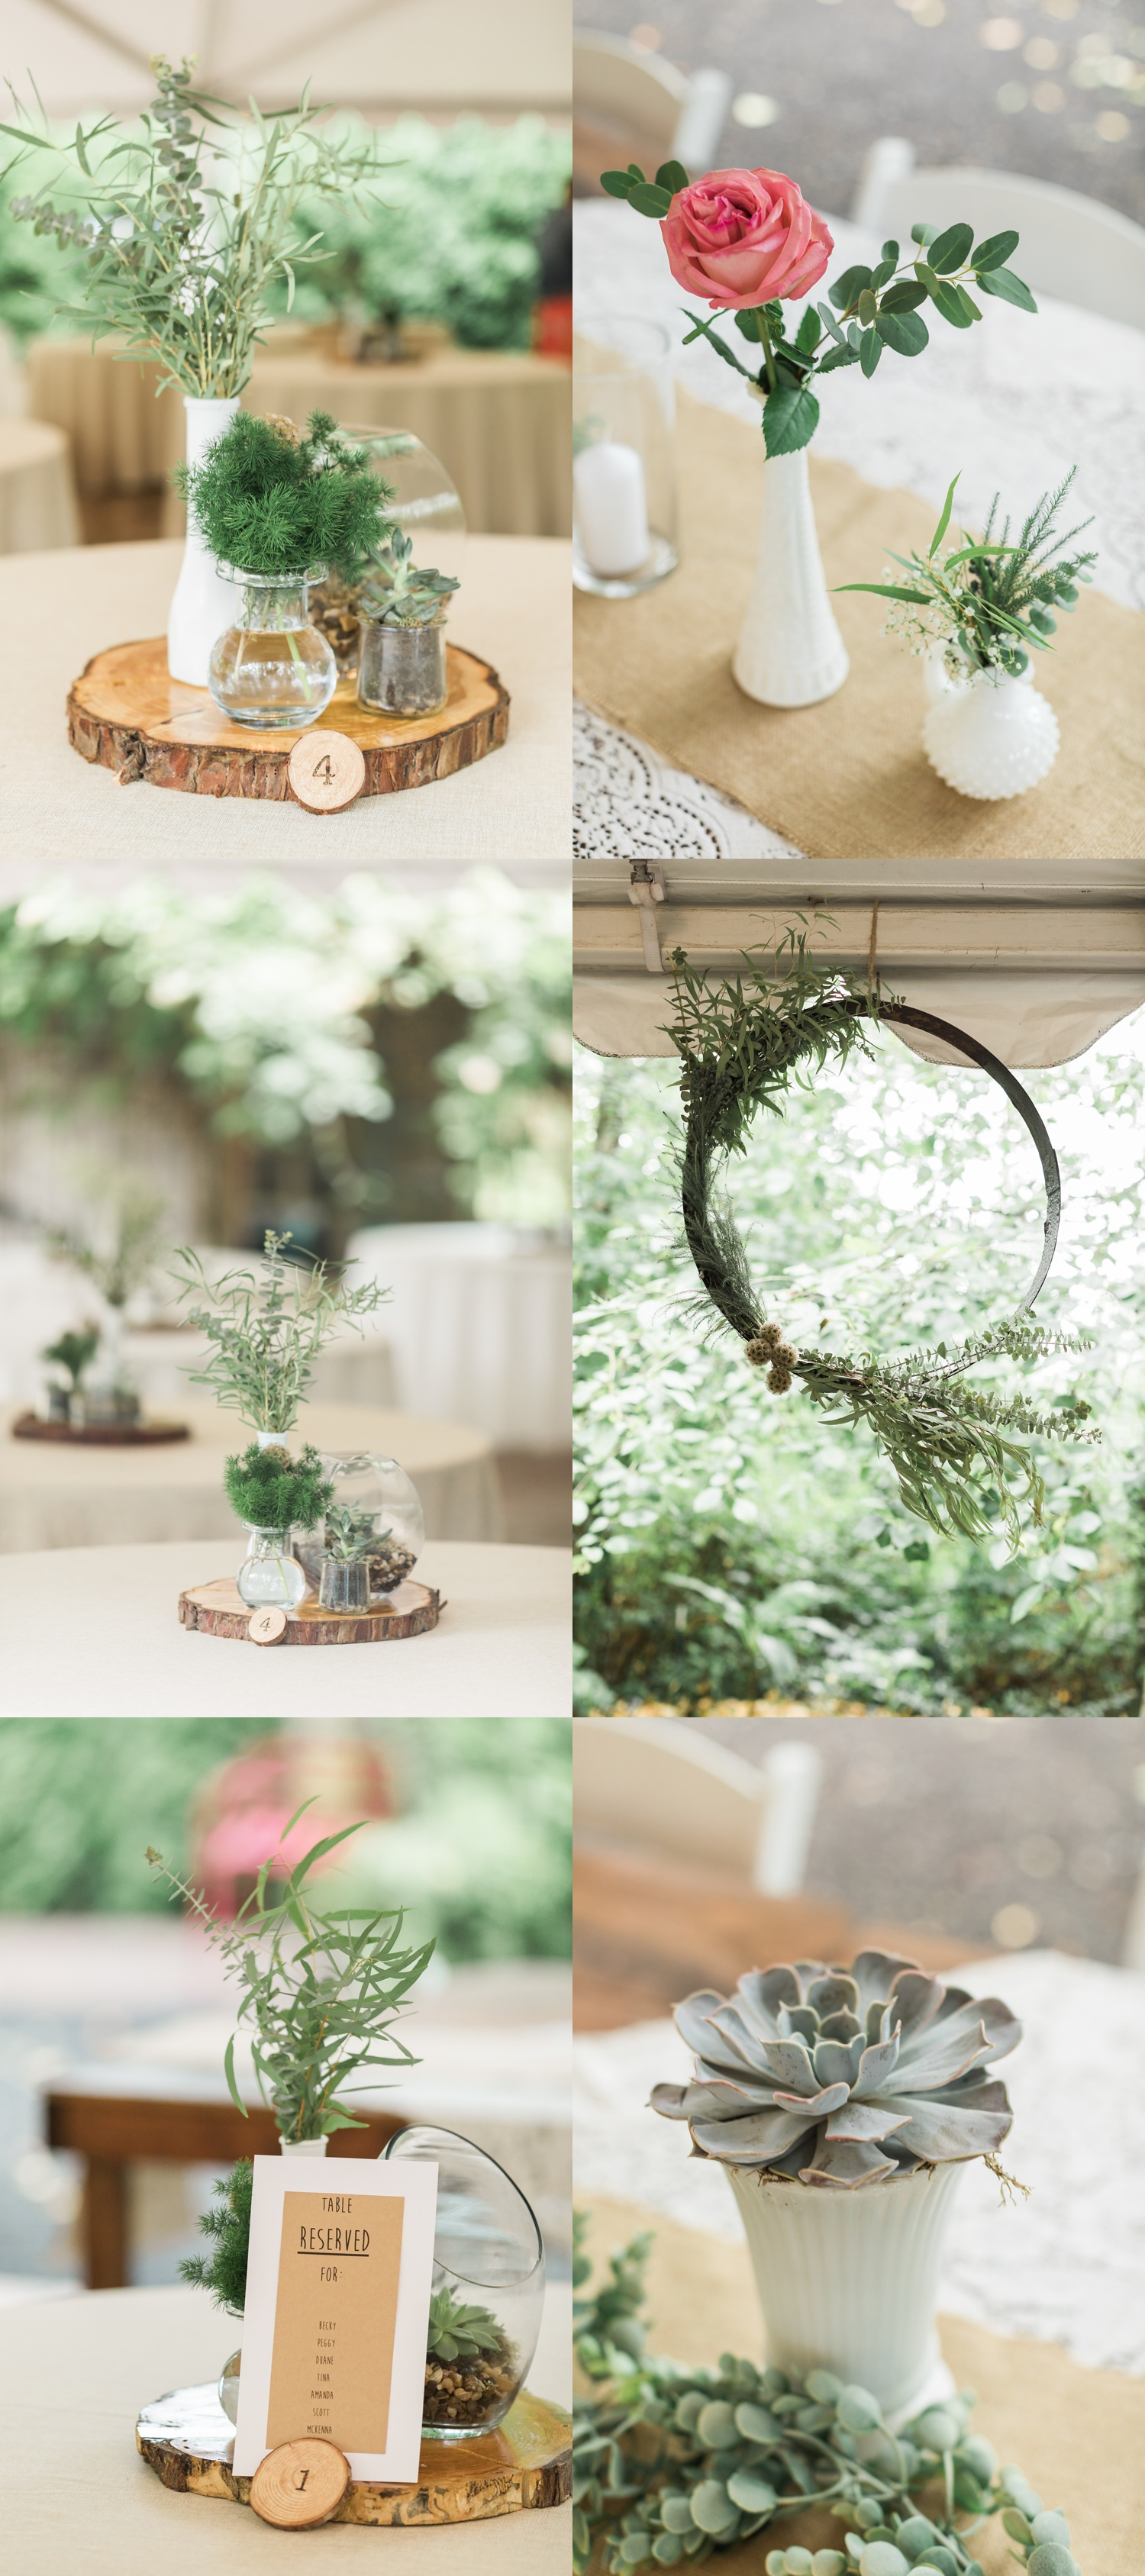 Beautiful rustic decor and centerpieces for a summer wedding at Maroni Meadows in Snohomish, a wedding venue near Seattle, WA. | Joanna Monger Photography | Seattle & Snohomish Photographer